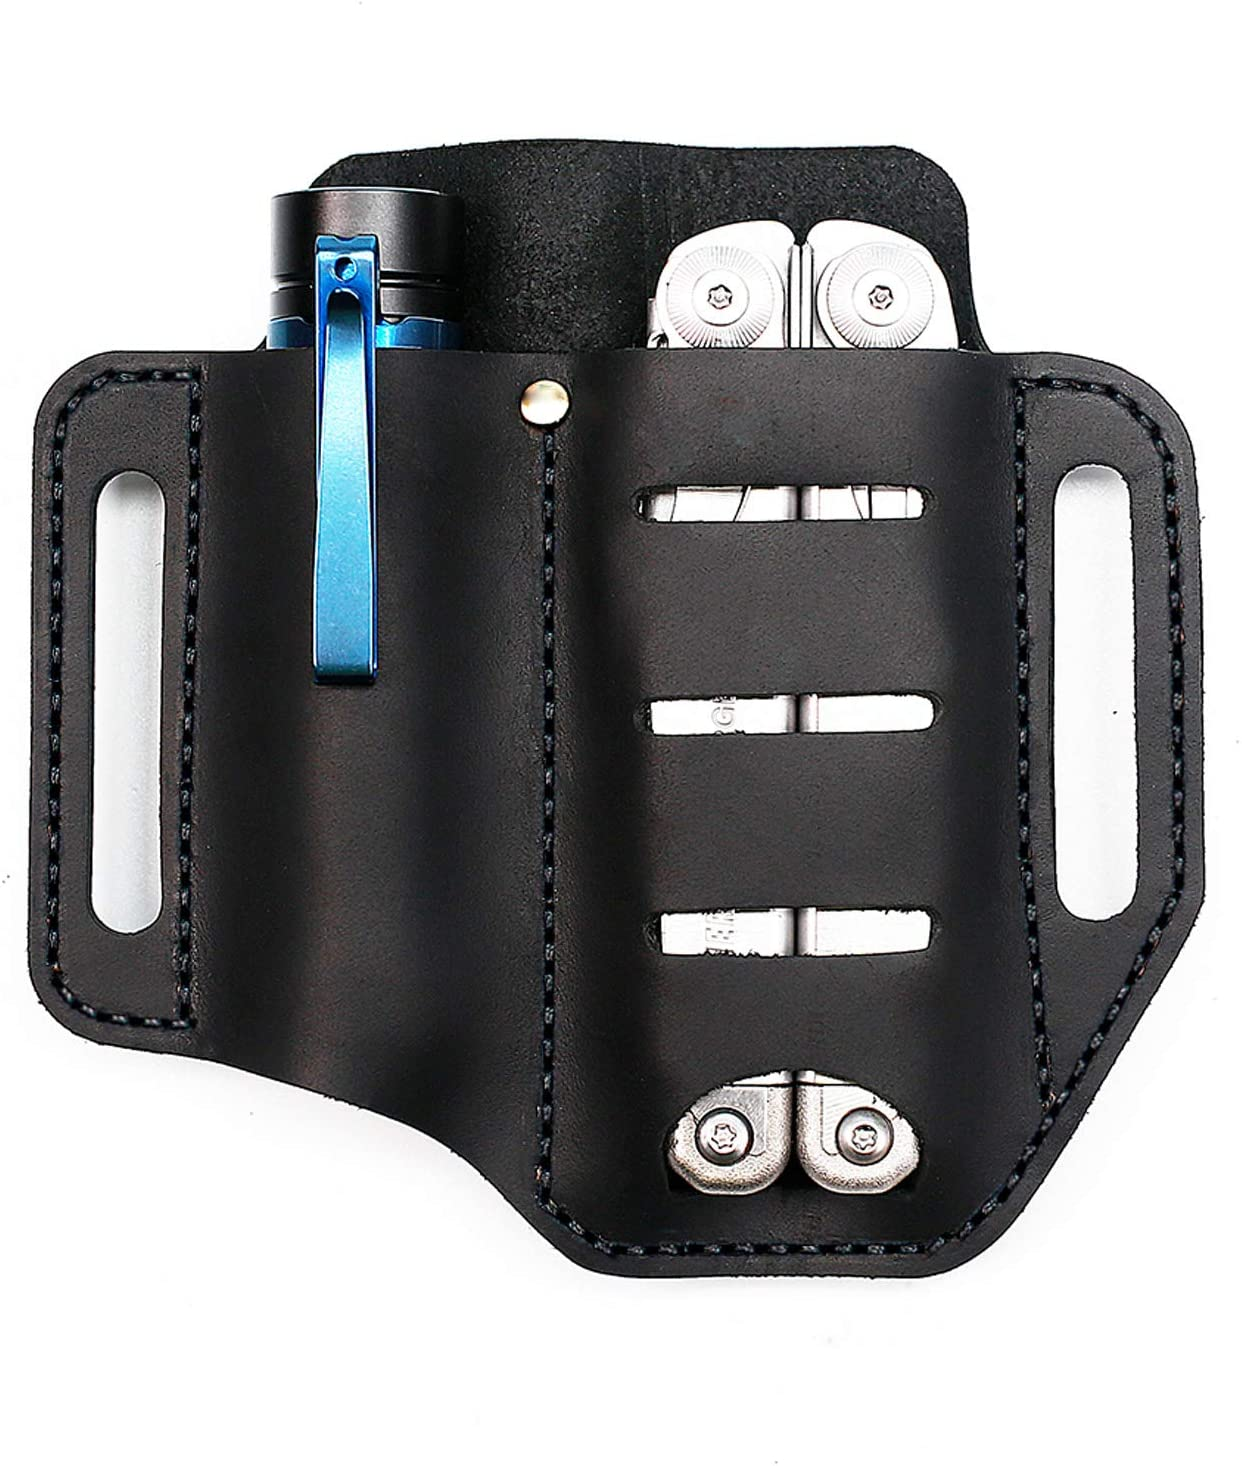 EASYANT Handmade EDC Leather Sheath/Leather Flashlight Holster/Knife Pouches and More Multitools